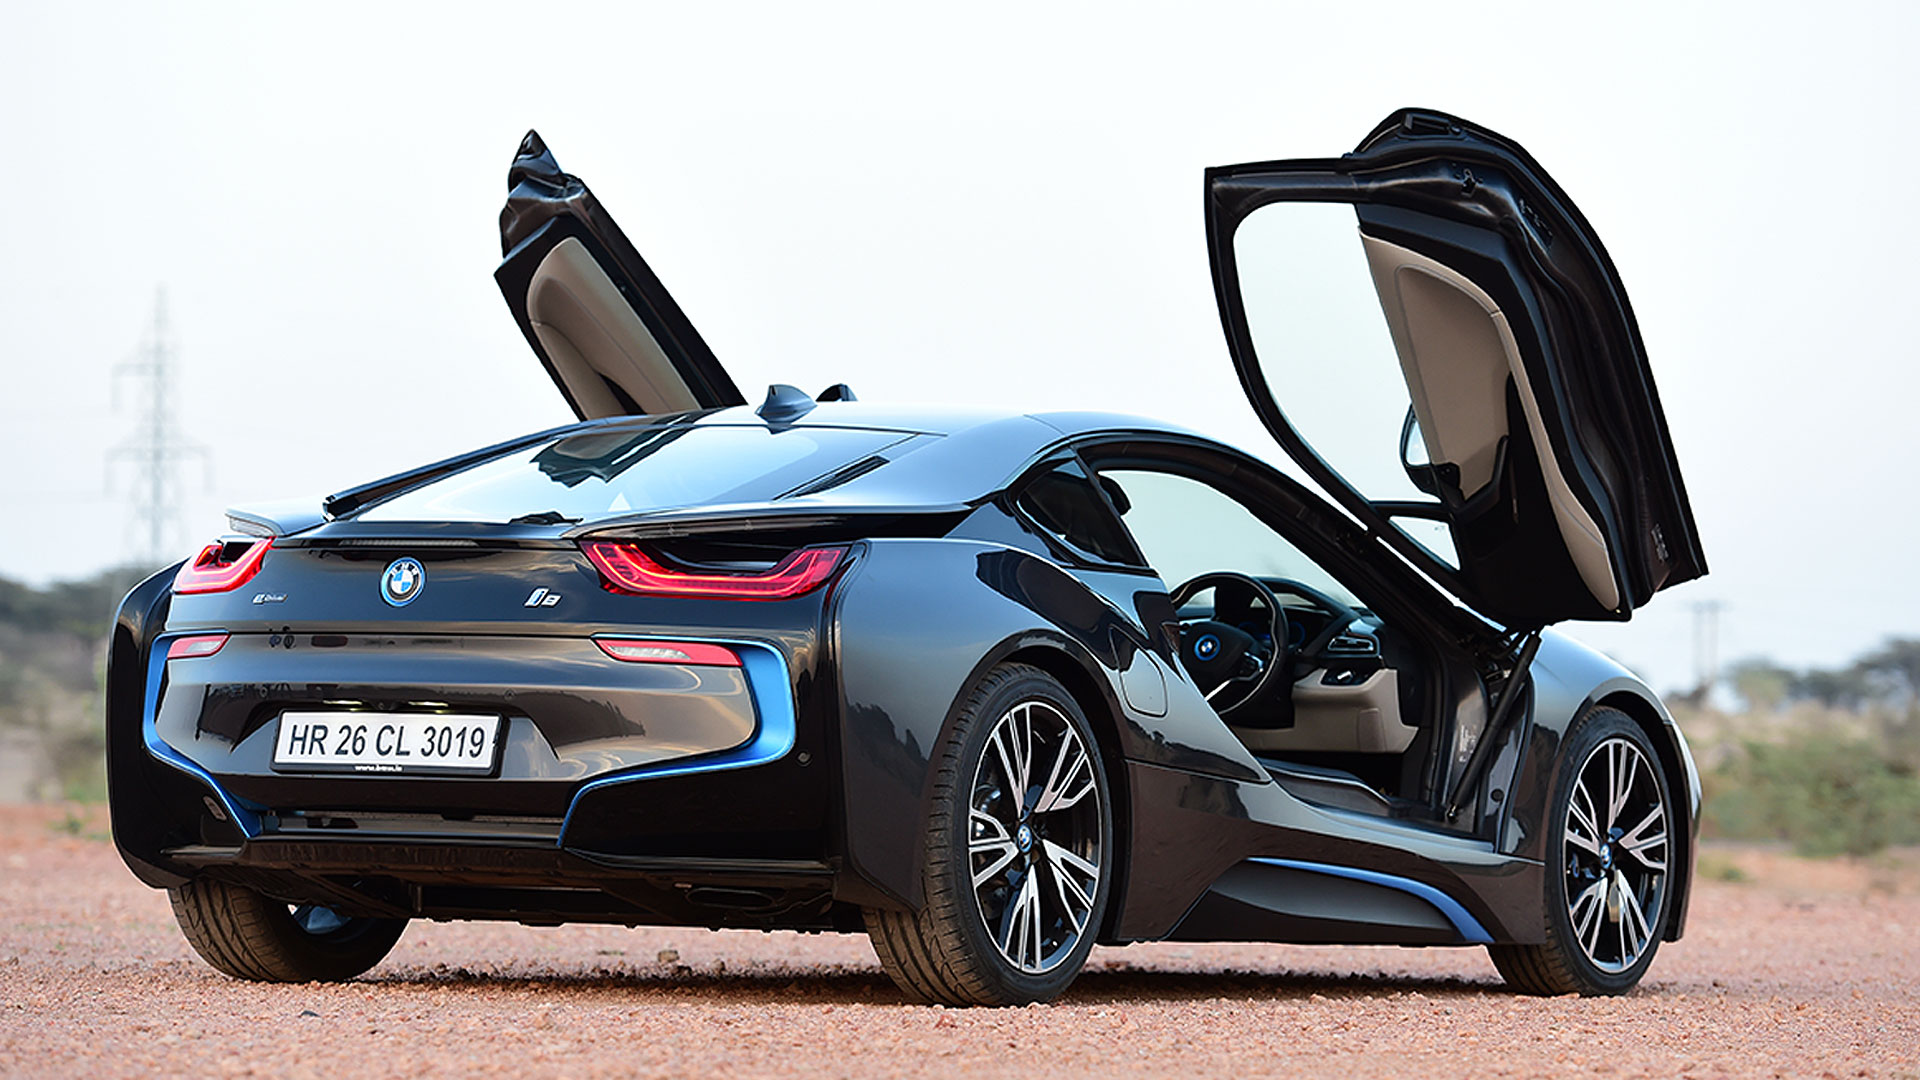 bmw i8 2018 price mileage reviews specification gallery overdrive. Black Bedroom Furniture Sets. Home Design Ideas